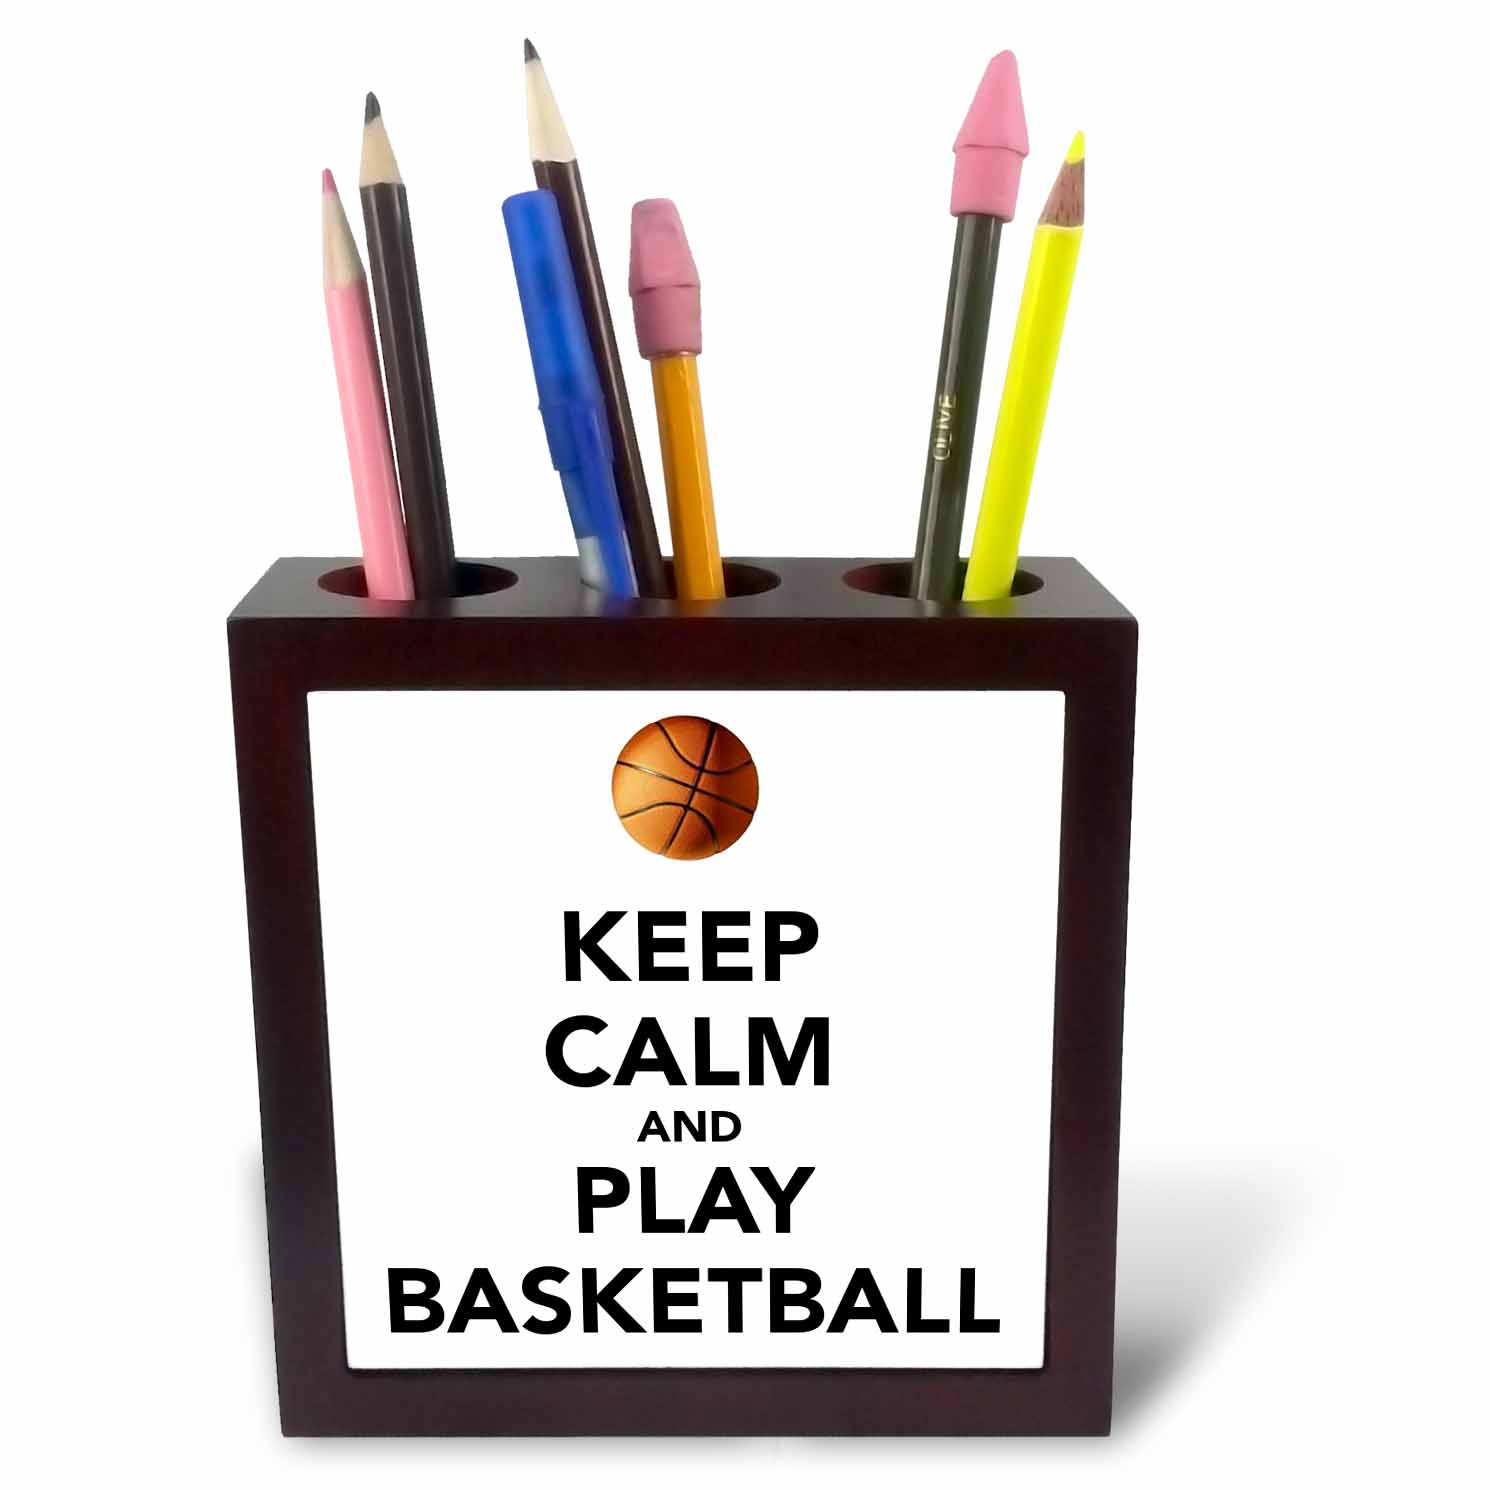 3dRose Keep calm and play basketball, White and Black, Tile Pen Holder, 5-inch